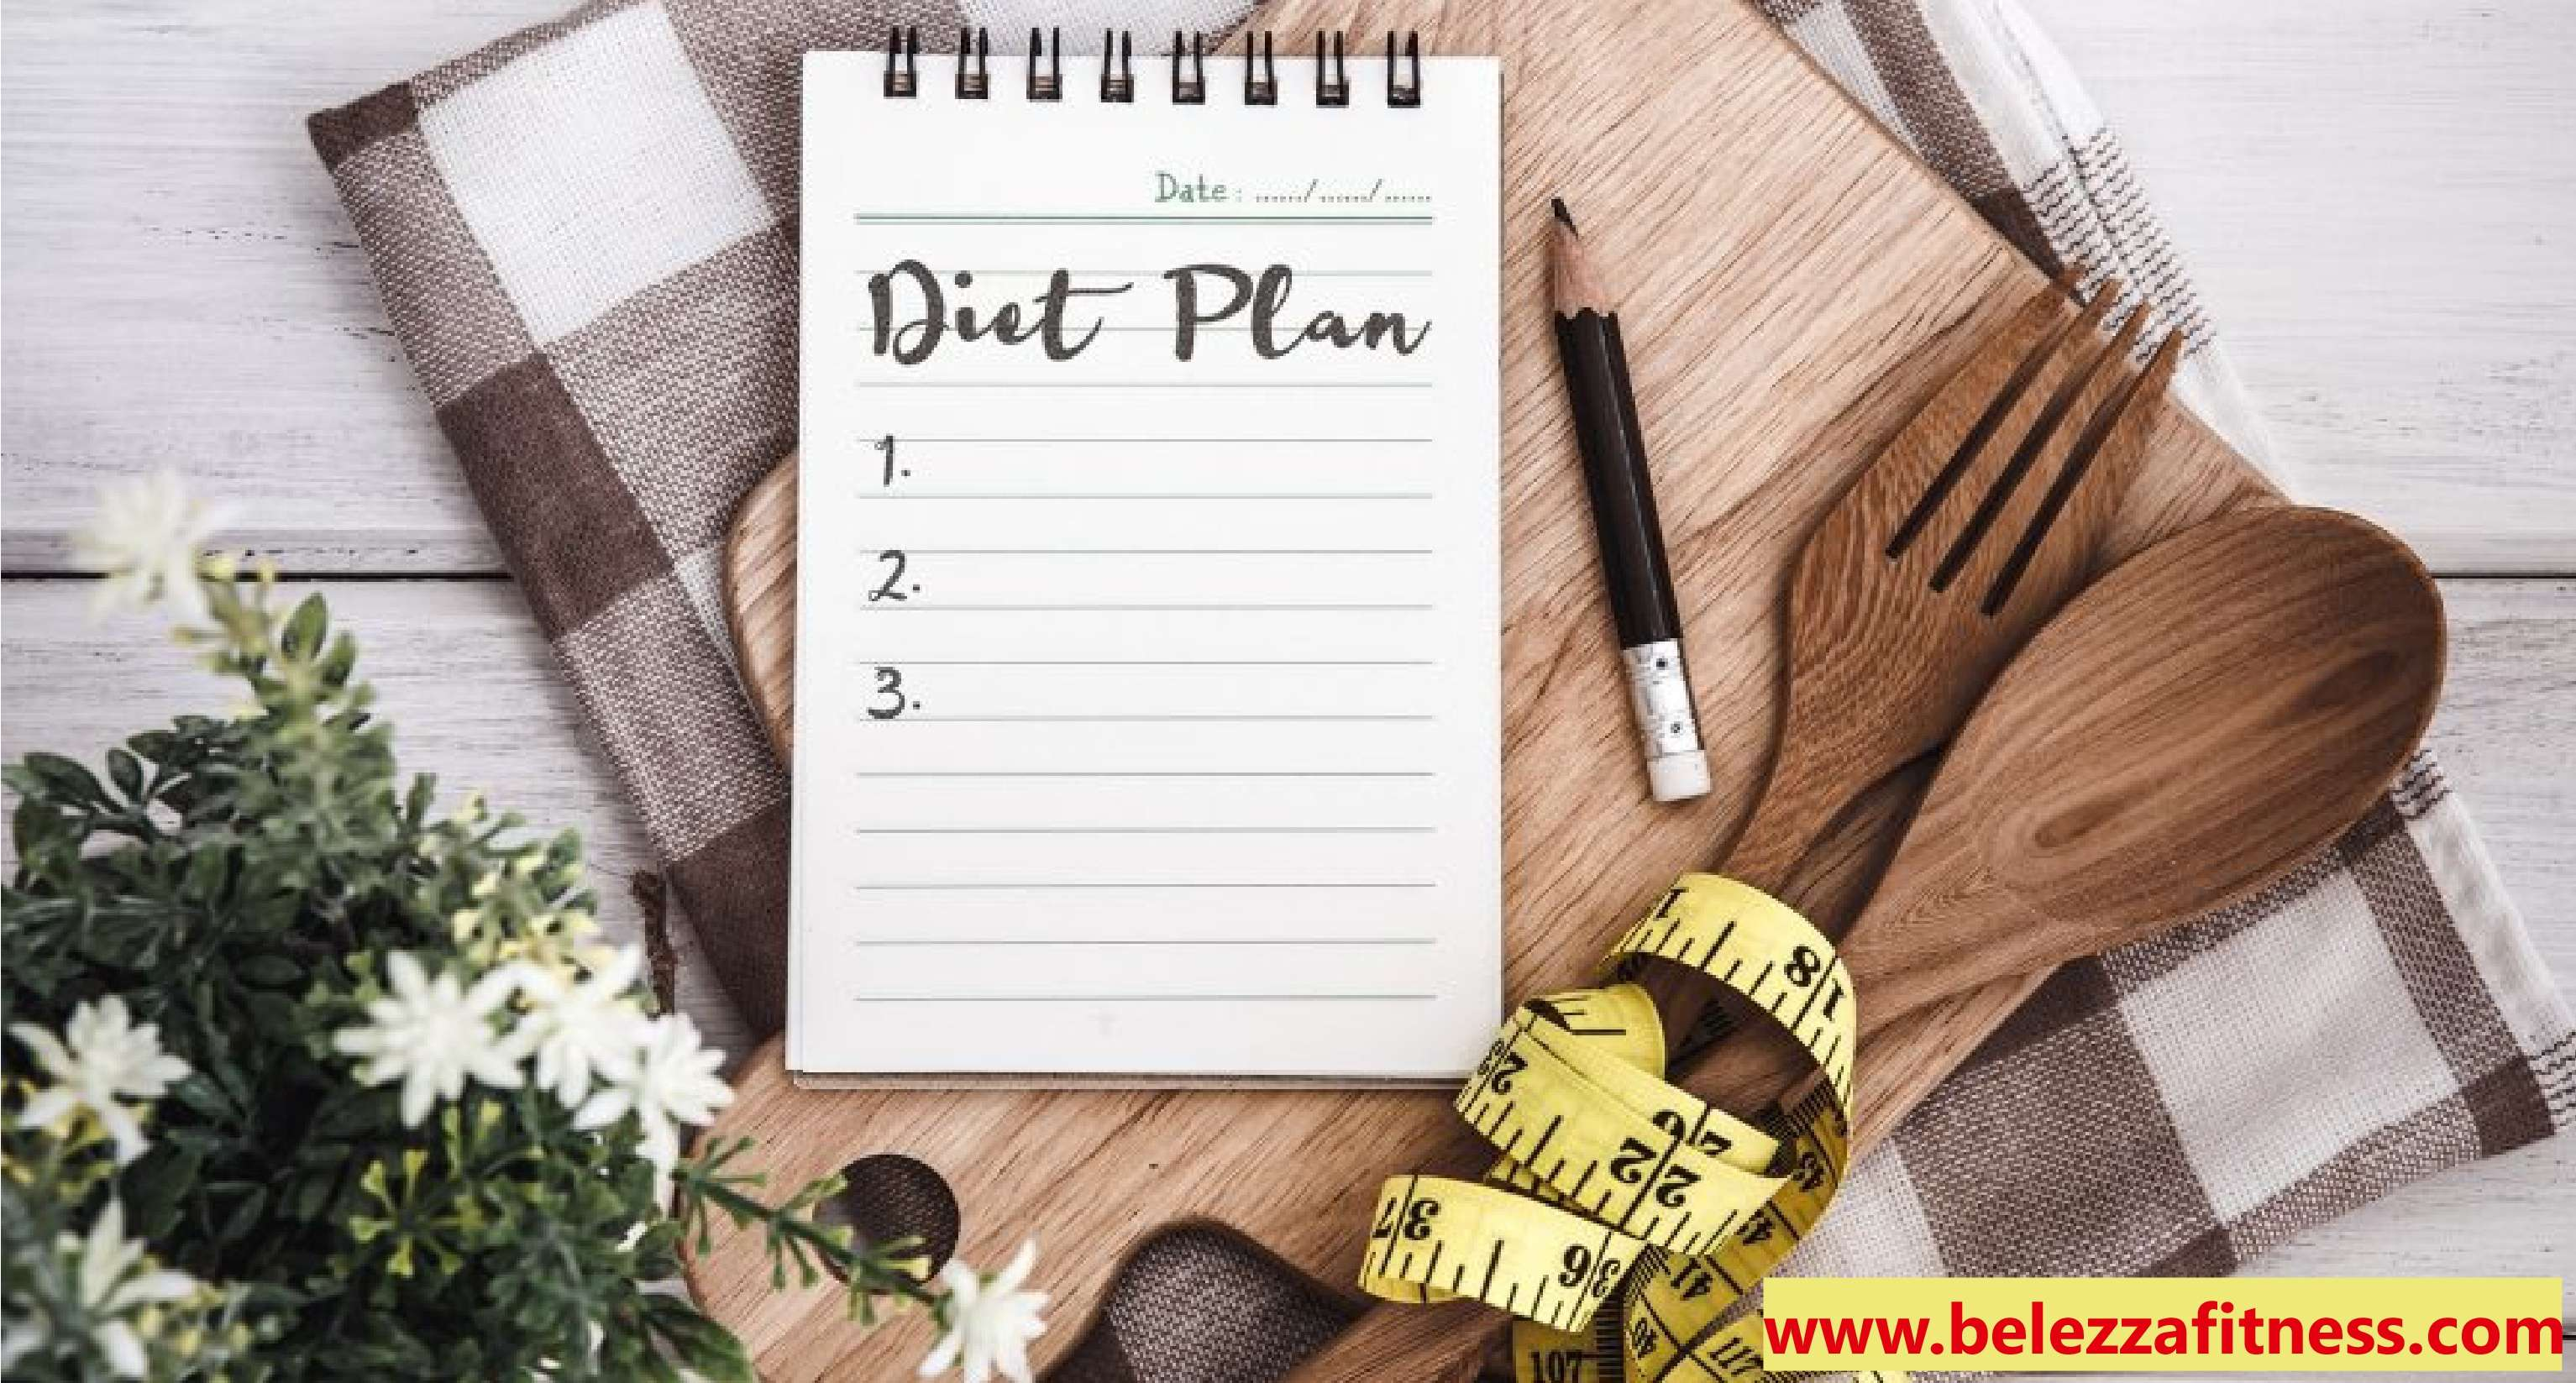 WEIGHT-LOSS!! A simple diet plan to get you started!!